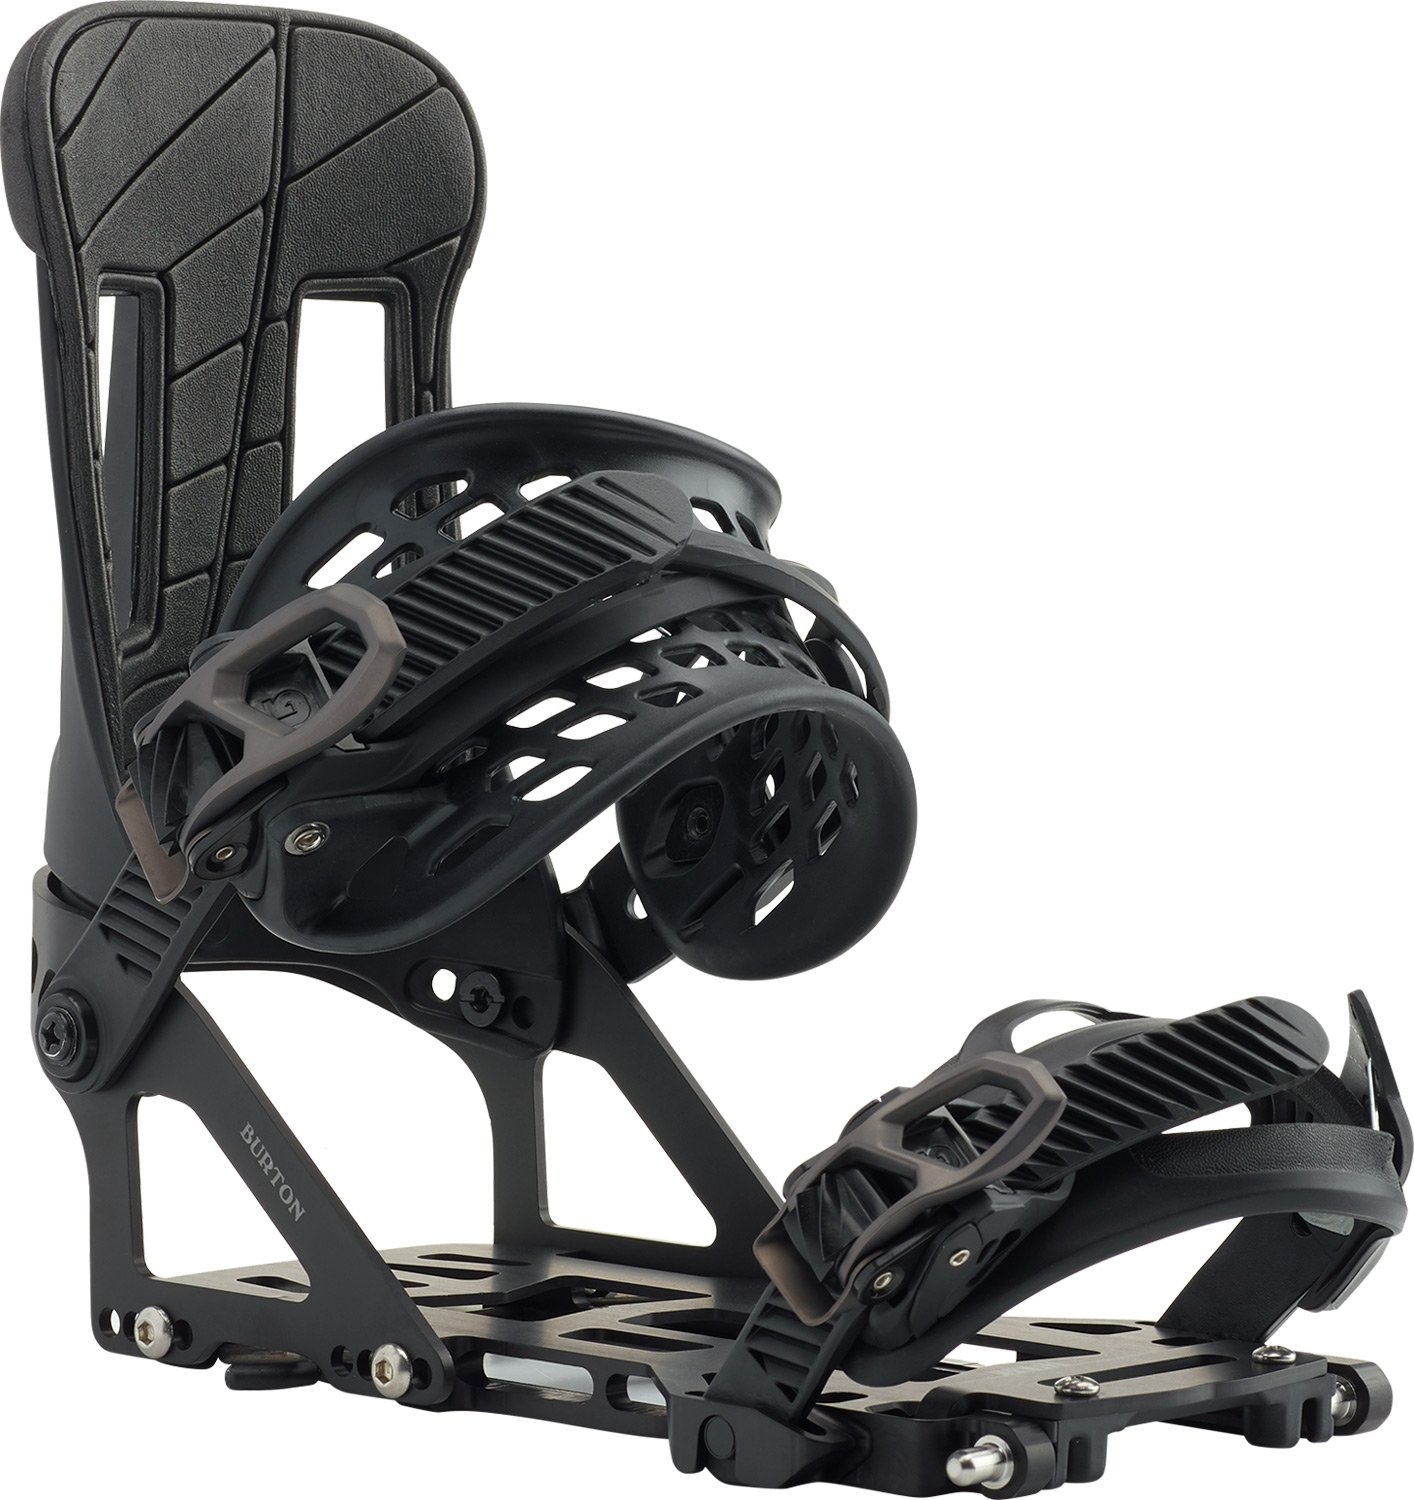 Amazon.com : Burton Hitchhiker Snowboard Bindings : Sports ...